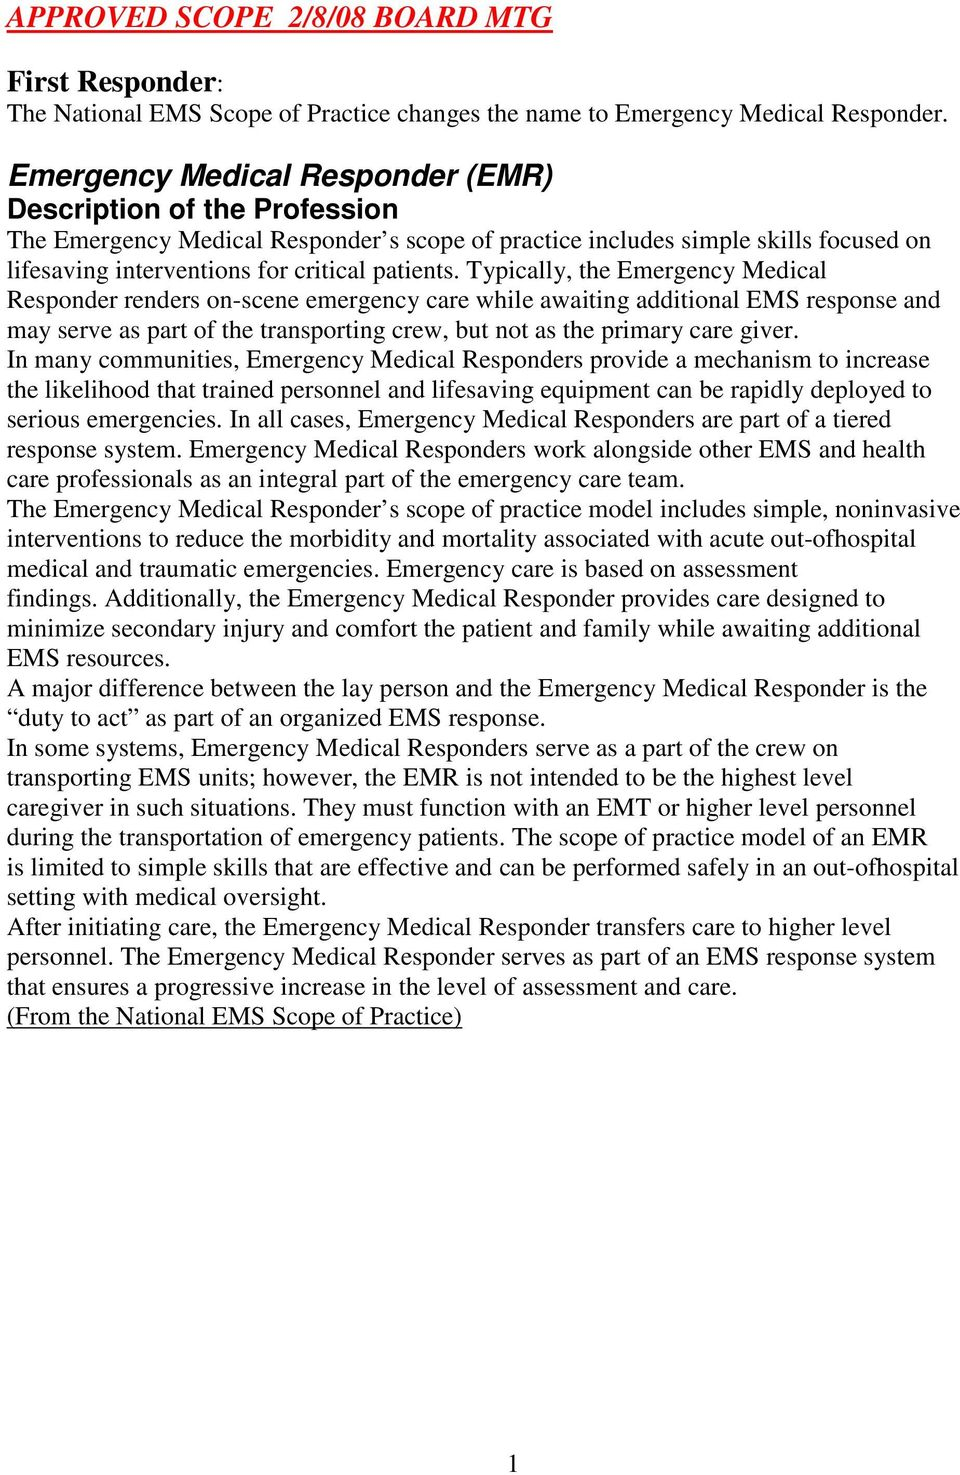 Typically, the Emergency Medical Responder renders on-scene emergency care while awaiting additional EMS response and may serve as part of the transporting crew, but not as the primary care giver.